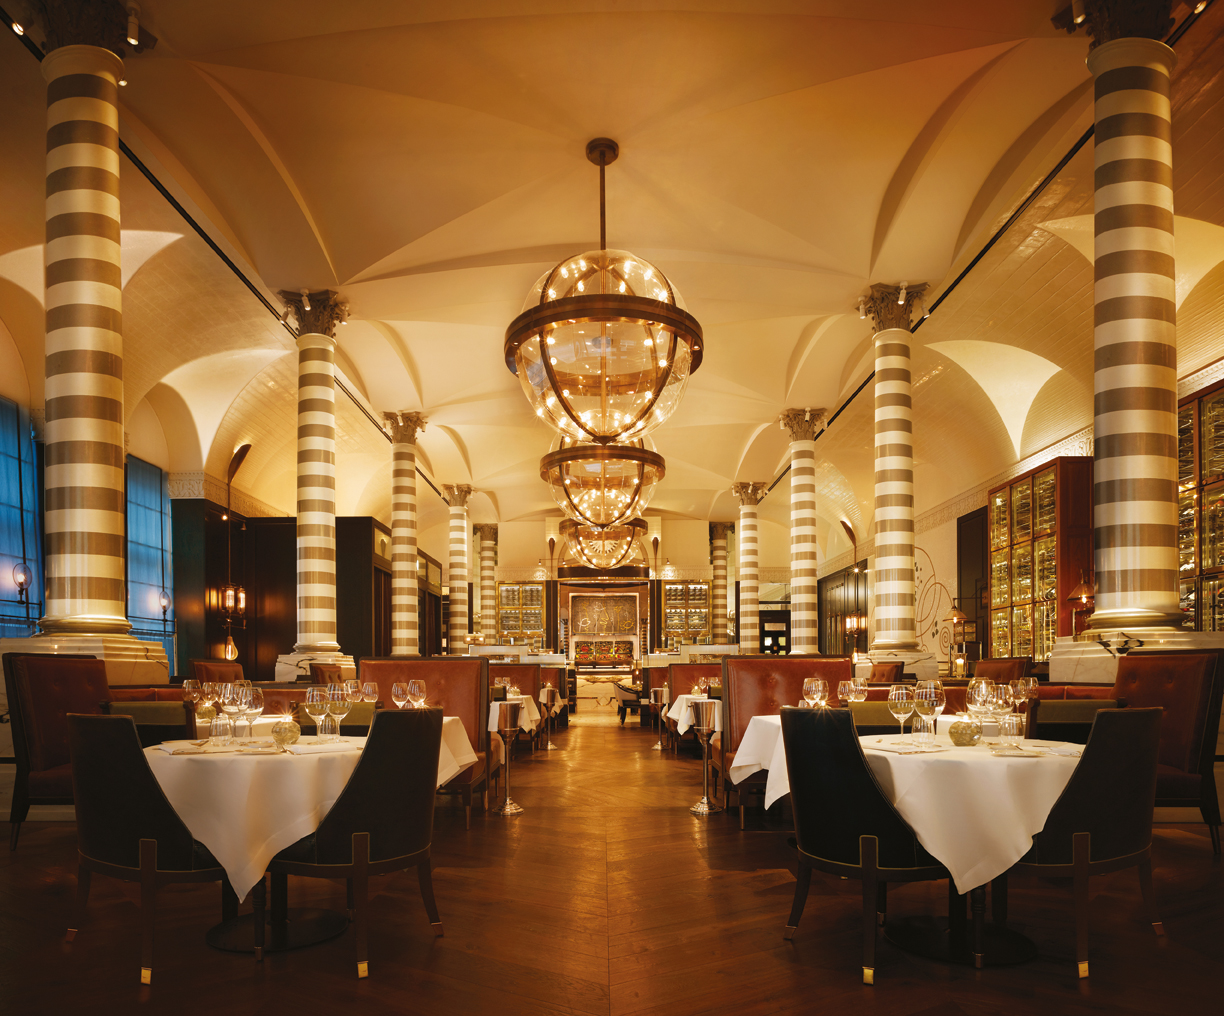 Reserve a table at Massimo Restaurant and Oyster Bar